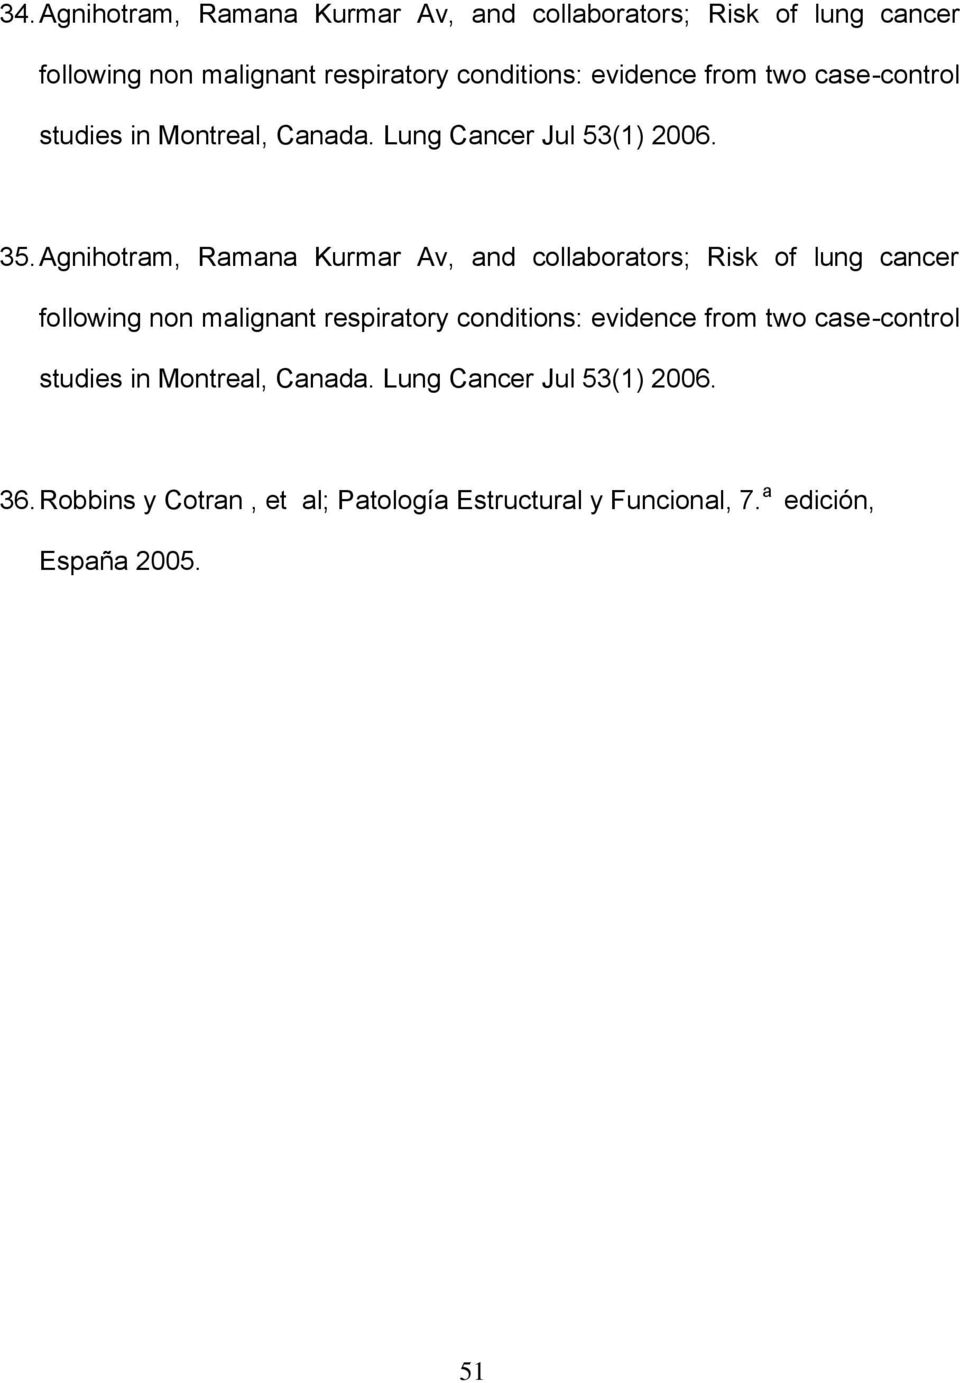 Agnihotram, Ramana Kurmar Av, and collaborators; Risk of lung cancer following non malignant respiratory conditions: evidence